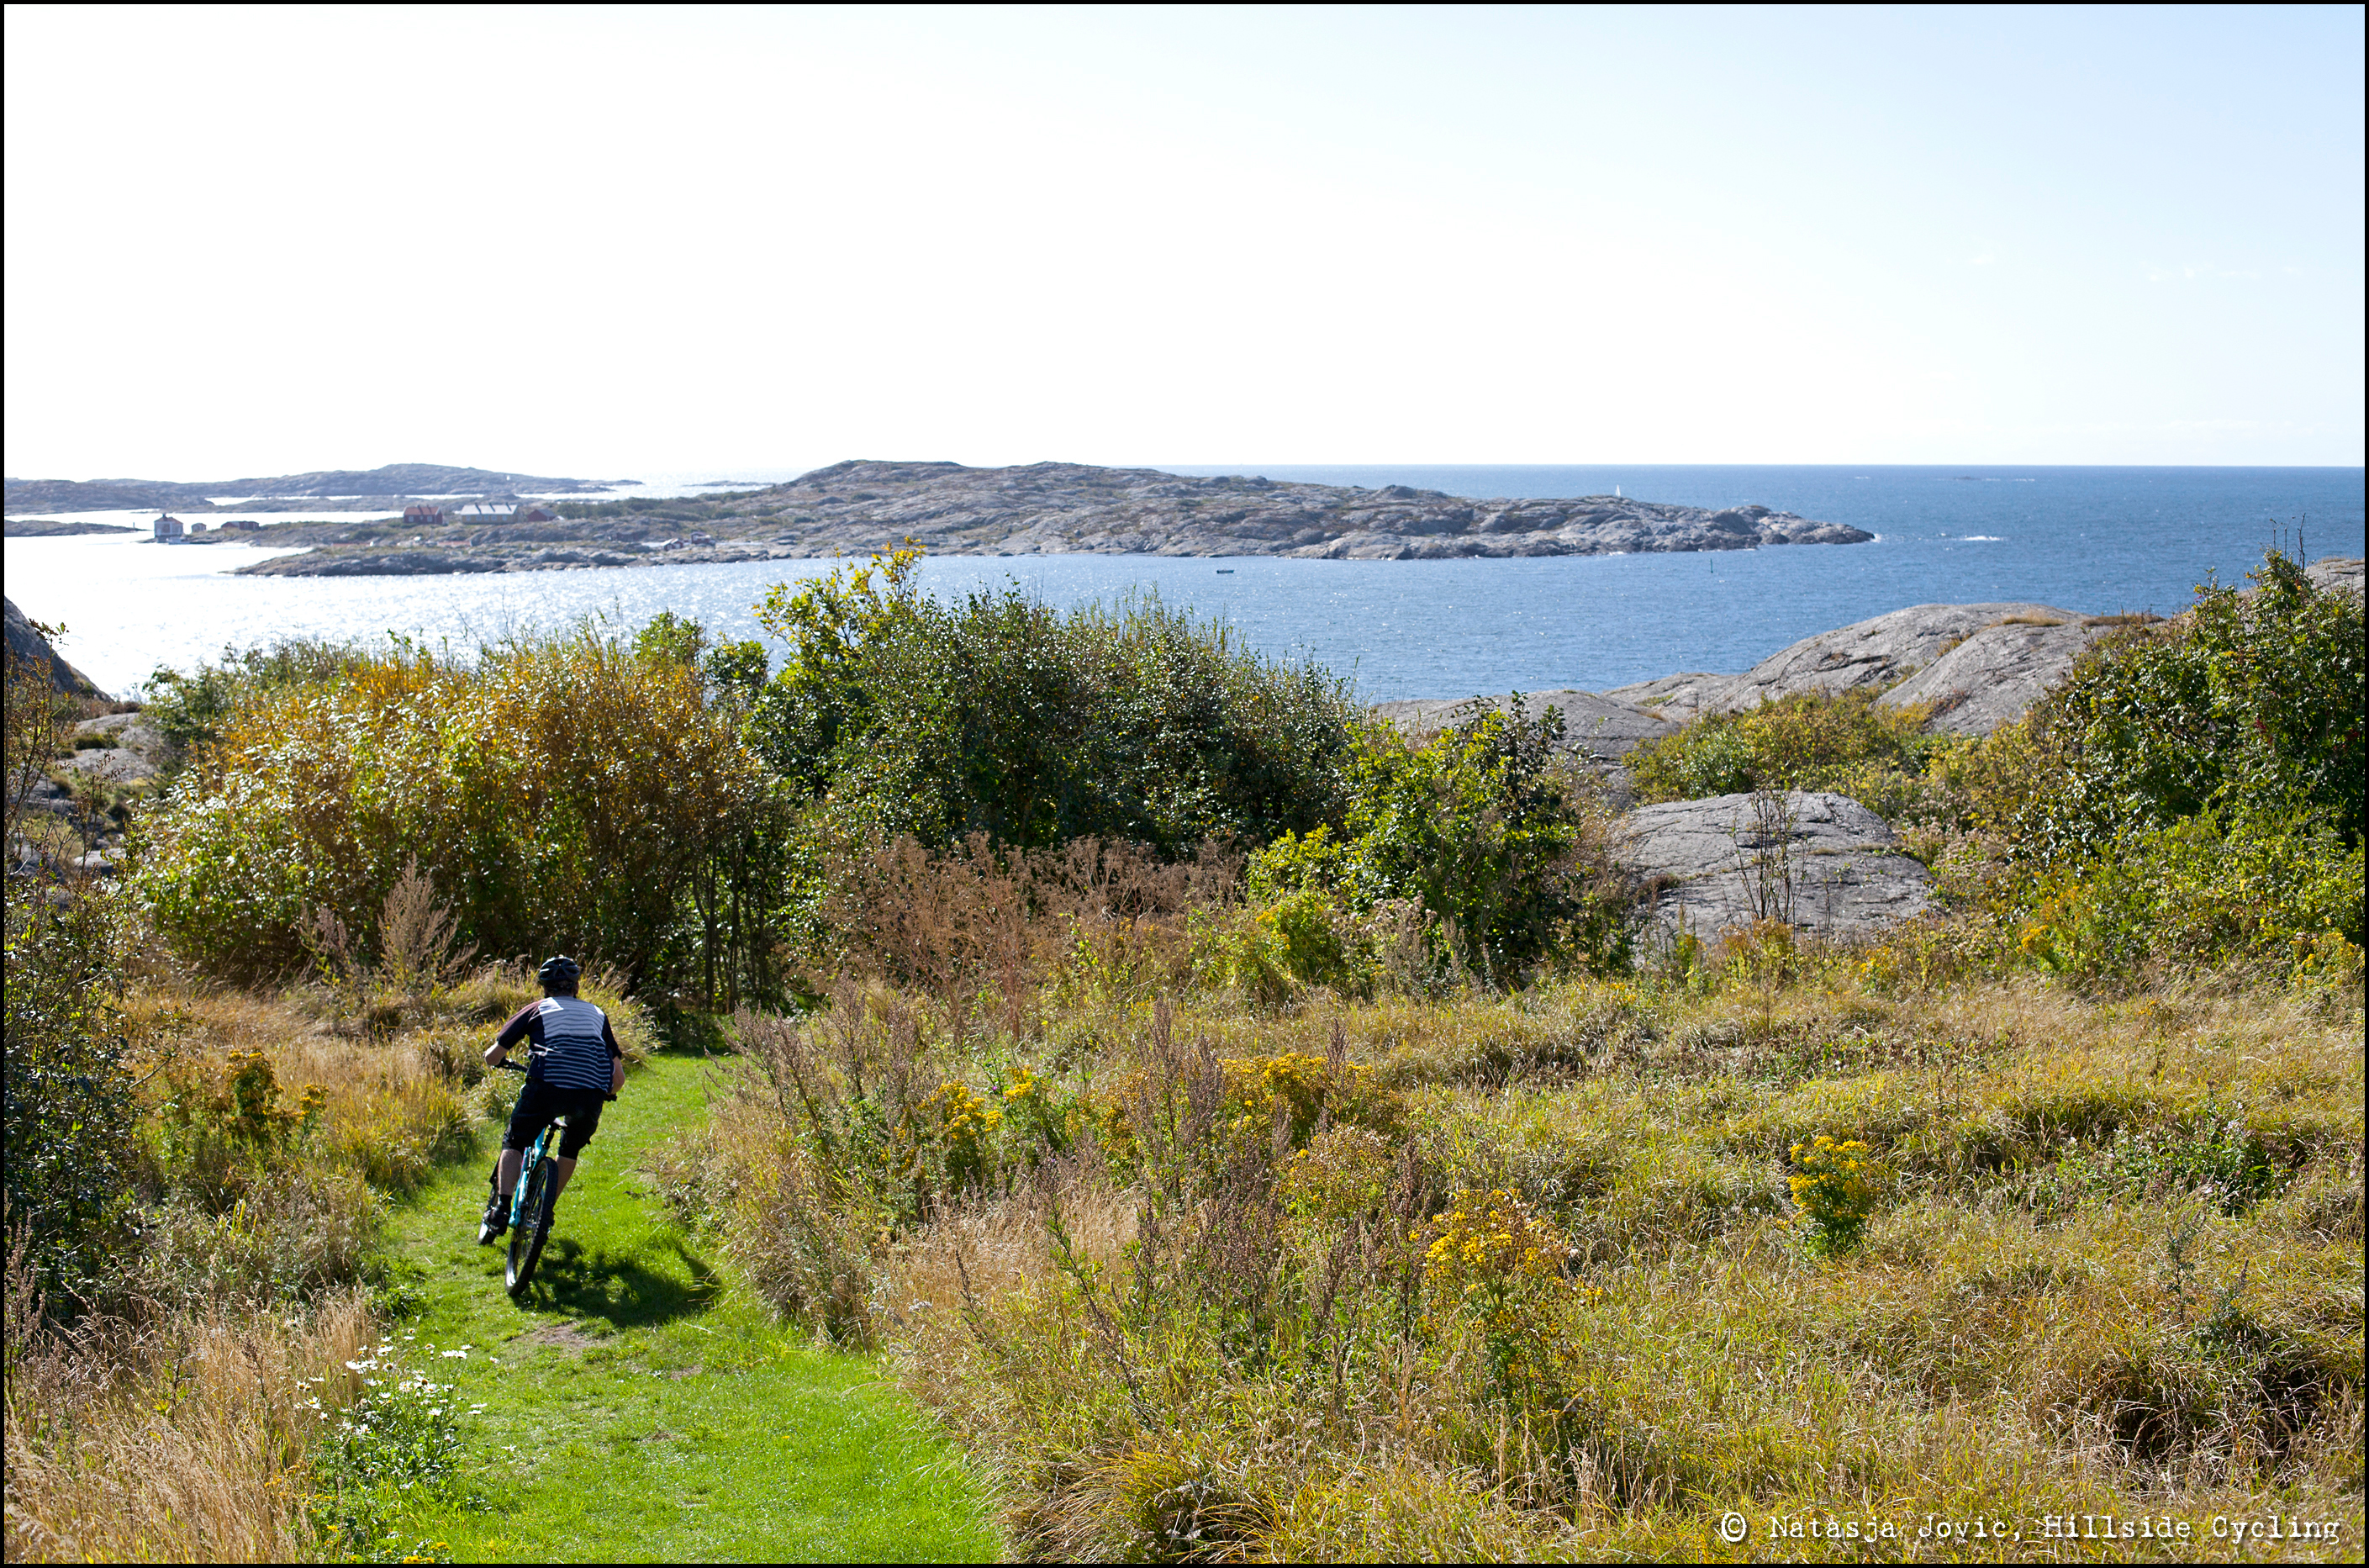 photo essay mountain biking magical marstrand island in sweden and if you feel like exploring off the beaten path it s only your imagination and skill that limits where you can ride along the rocky landscape